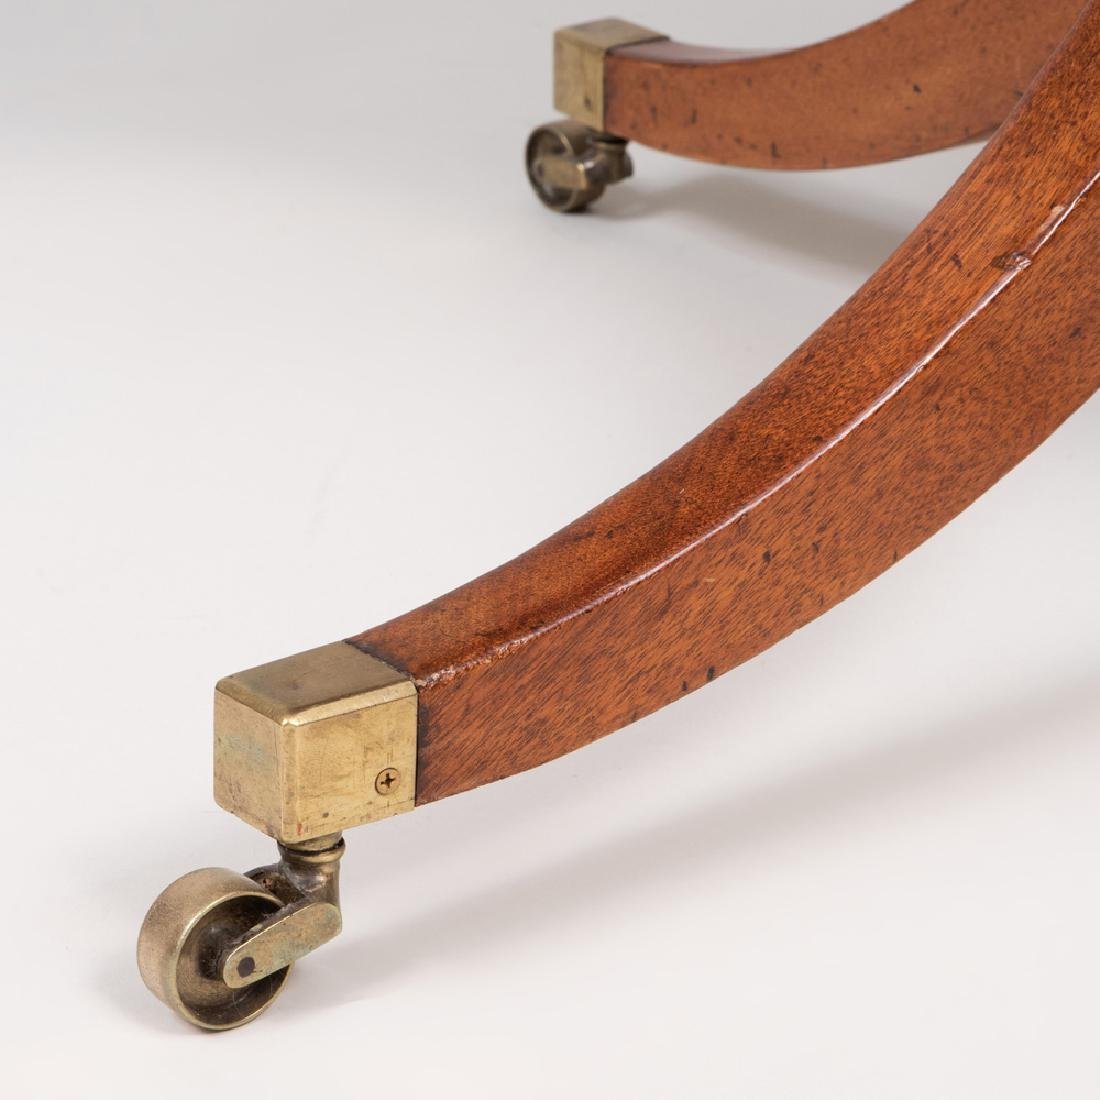 Regency Style Mahogany, Ebony and Boxwood Strung - 7